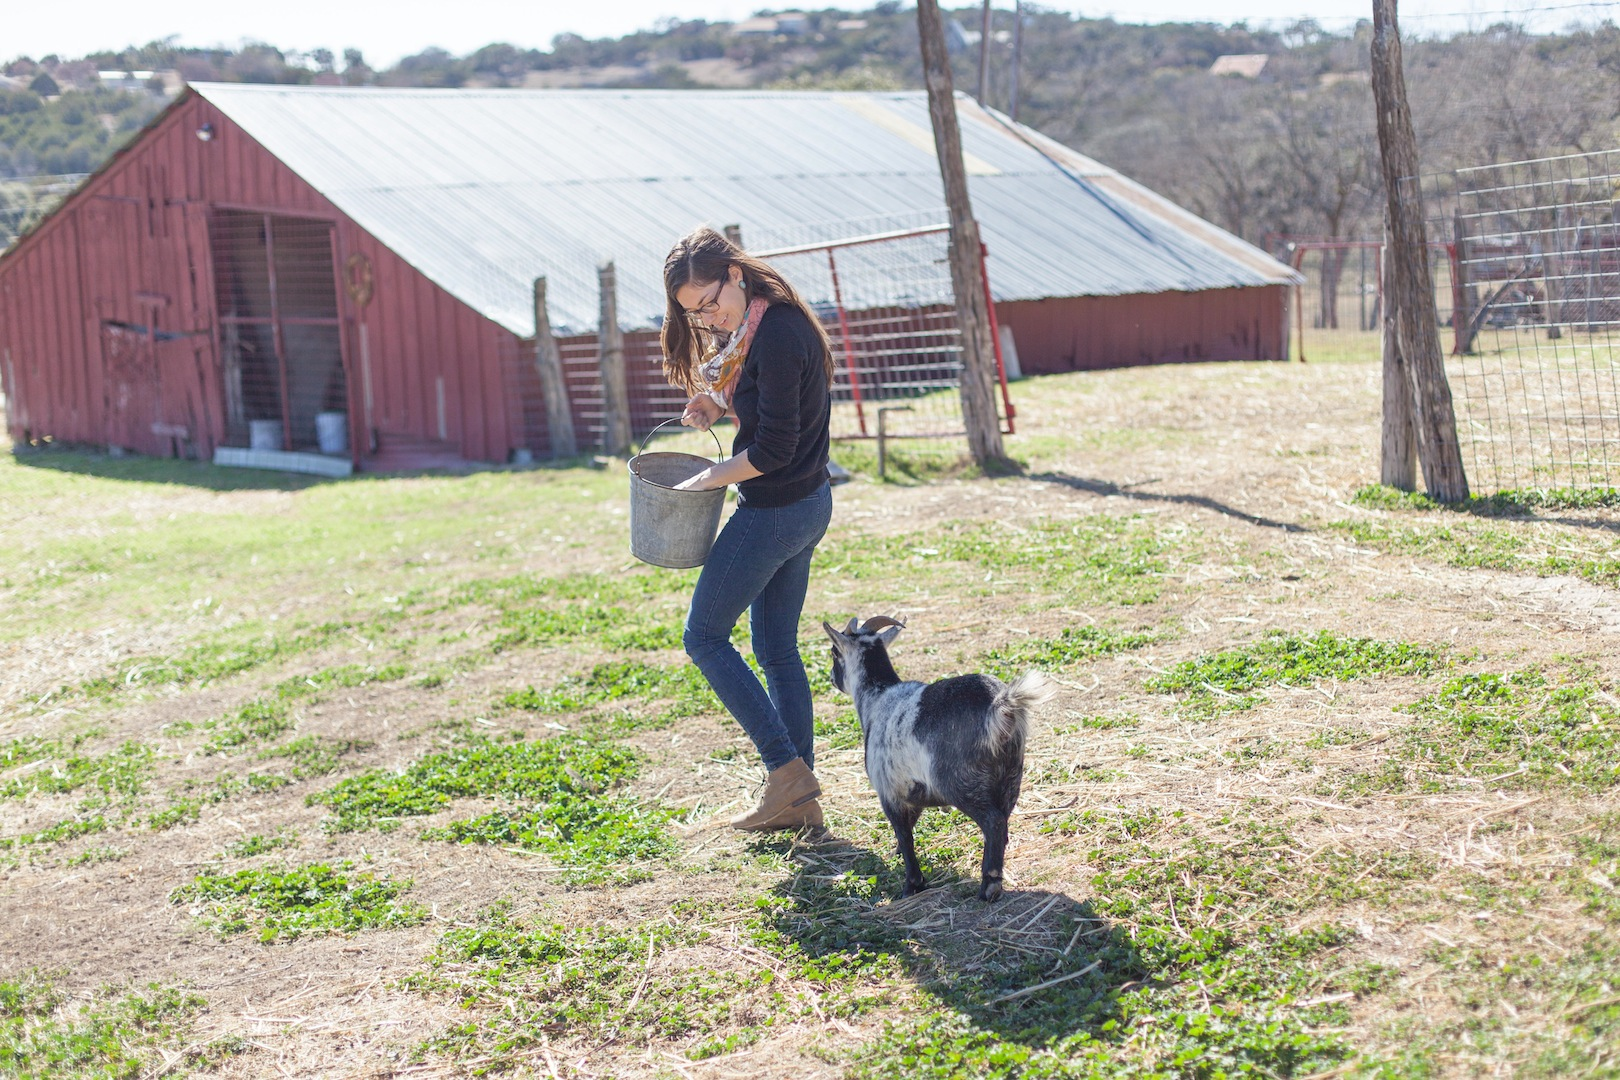 Amanda-and-goat-kerrville-texas-1.jpg